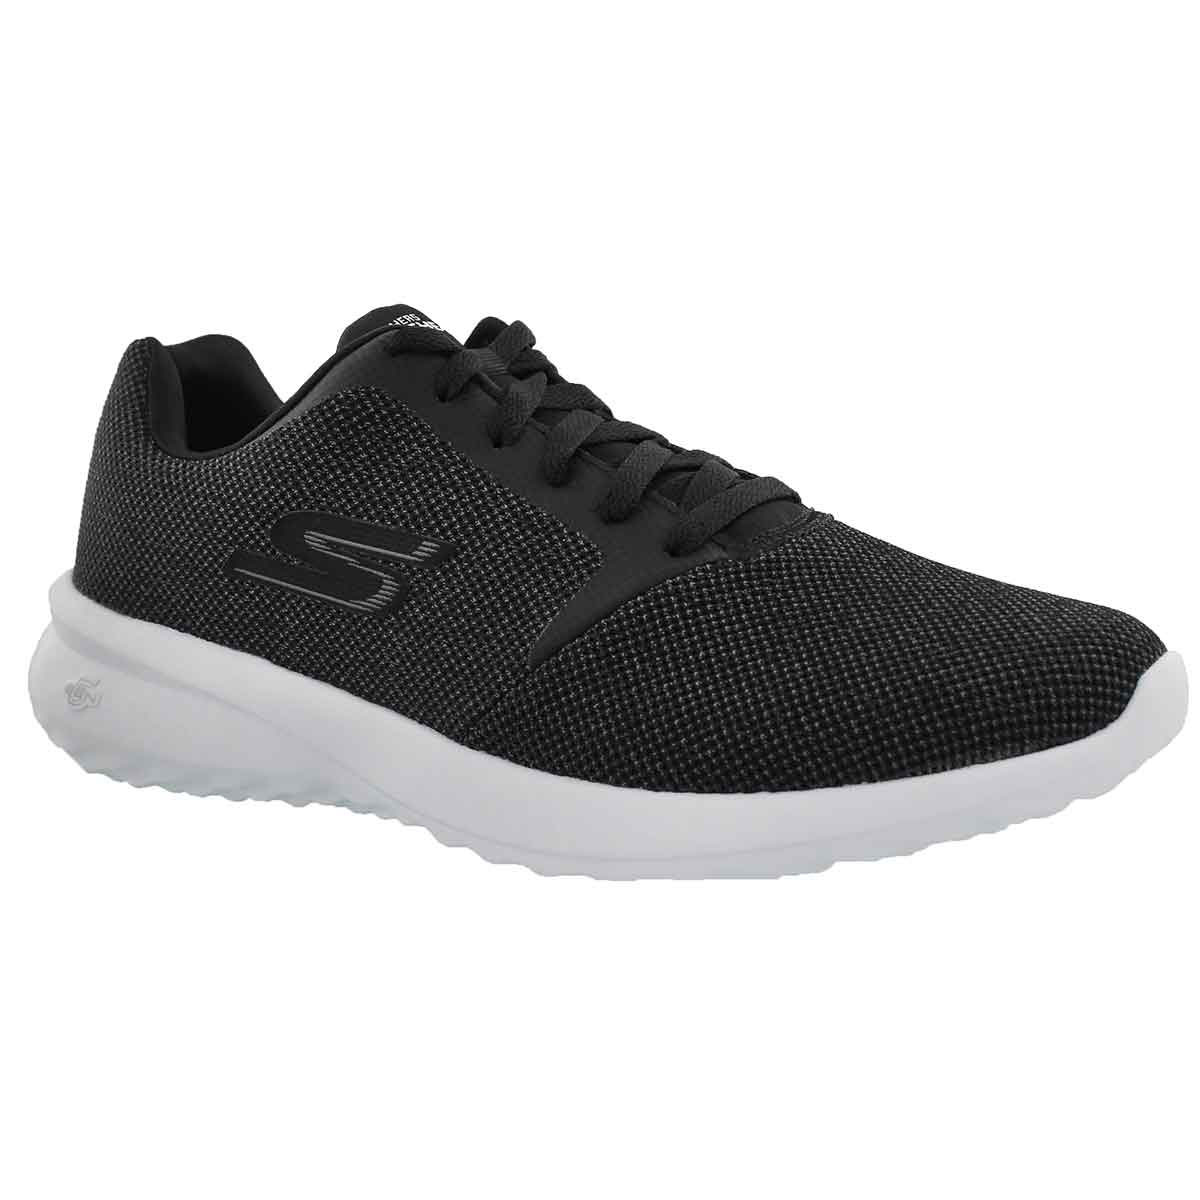 Men's ON THE GO CITY 3.0 blk/wht running shoes